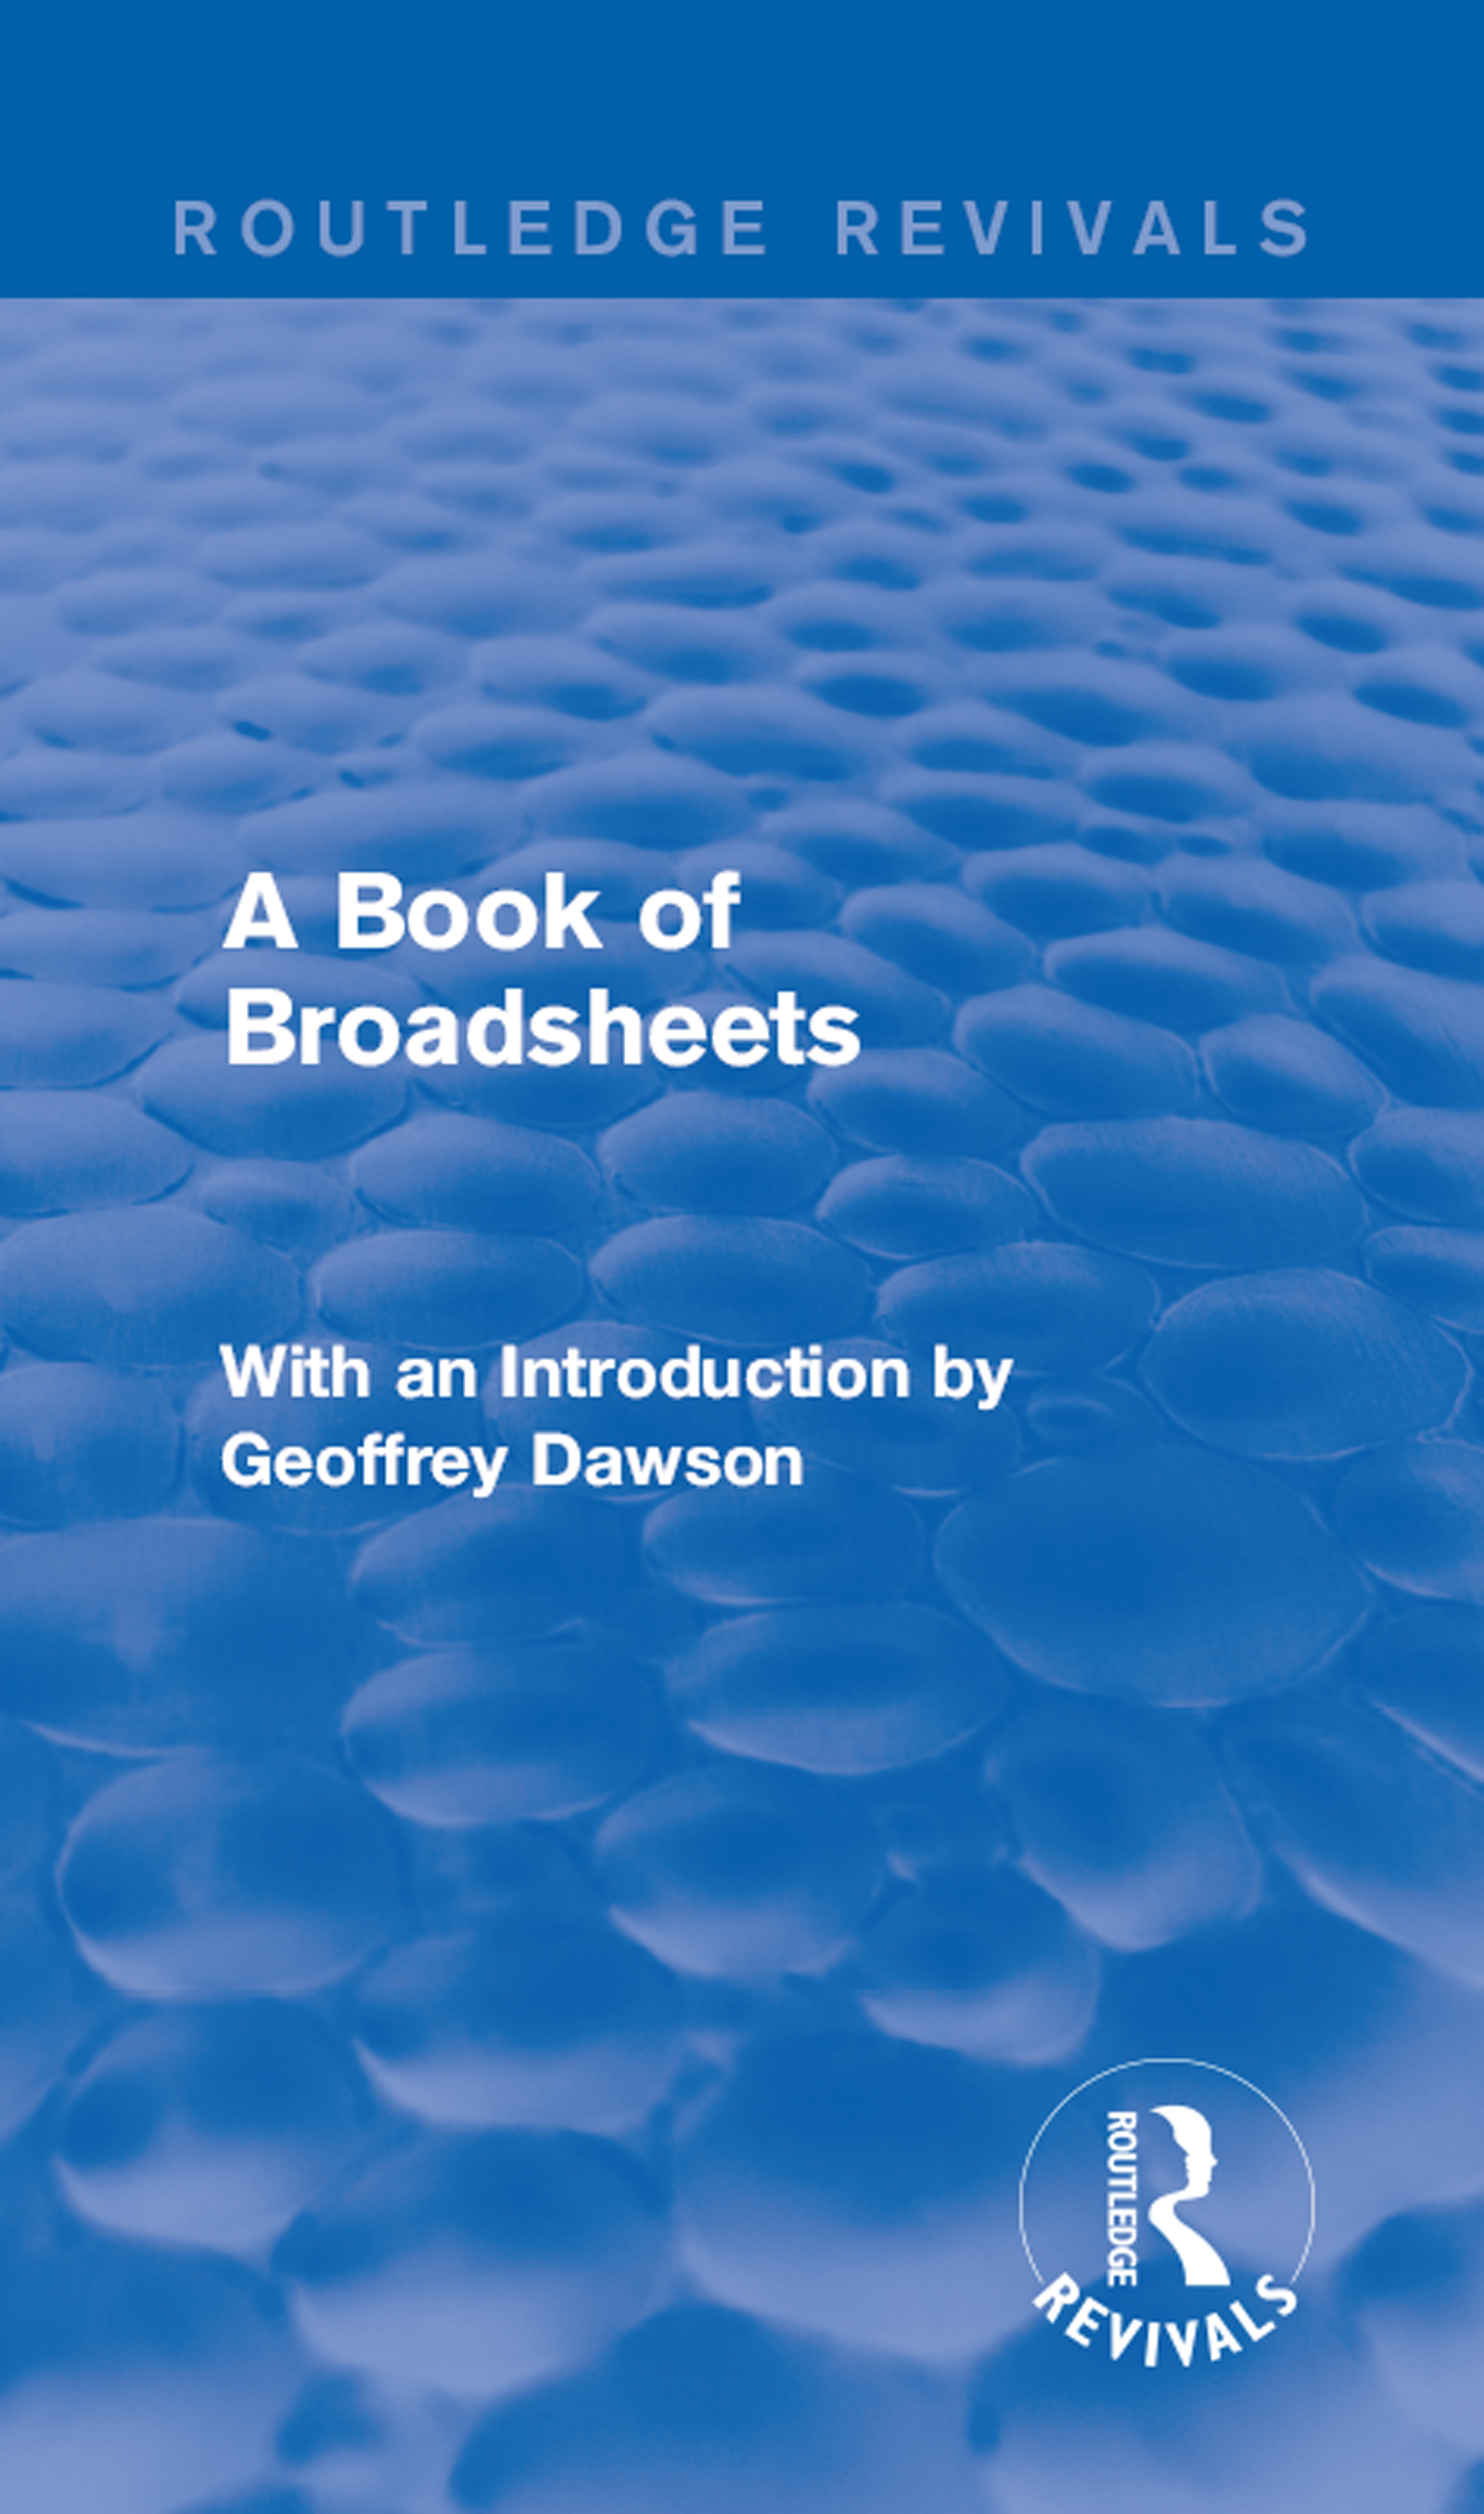 A Book of Broadsheets (Routledge Revivals): With an Introduction by Geoffrey Dawson, 1st Edition (Hardback) book cover